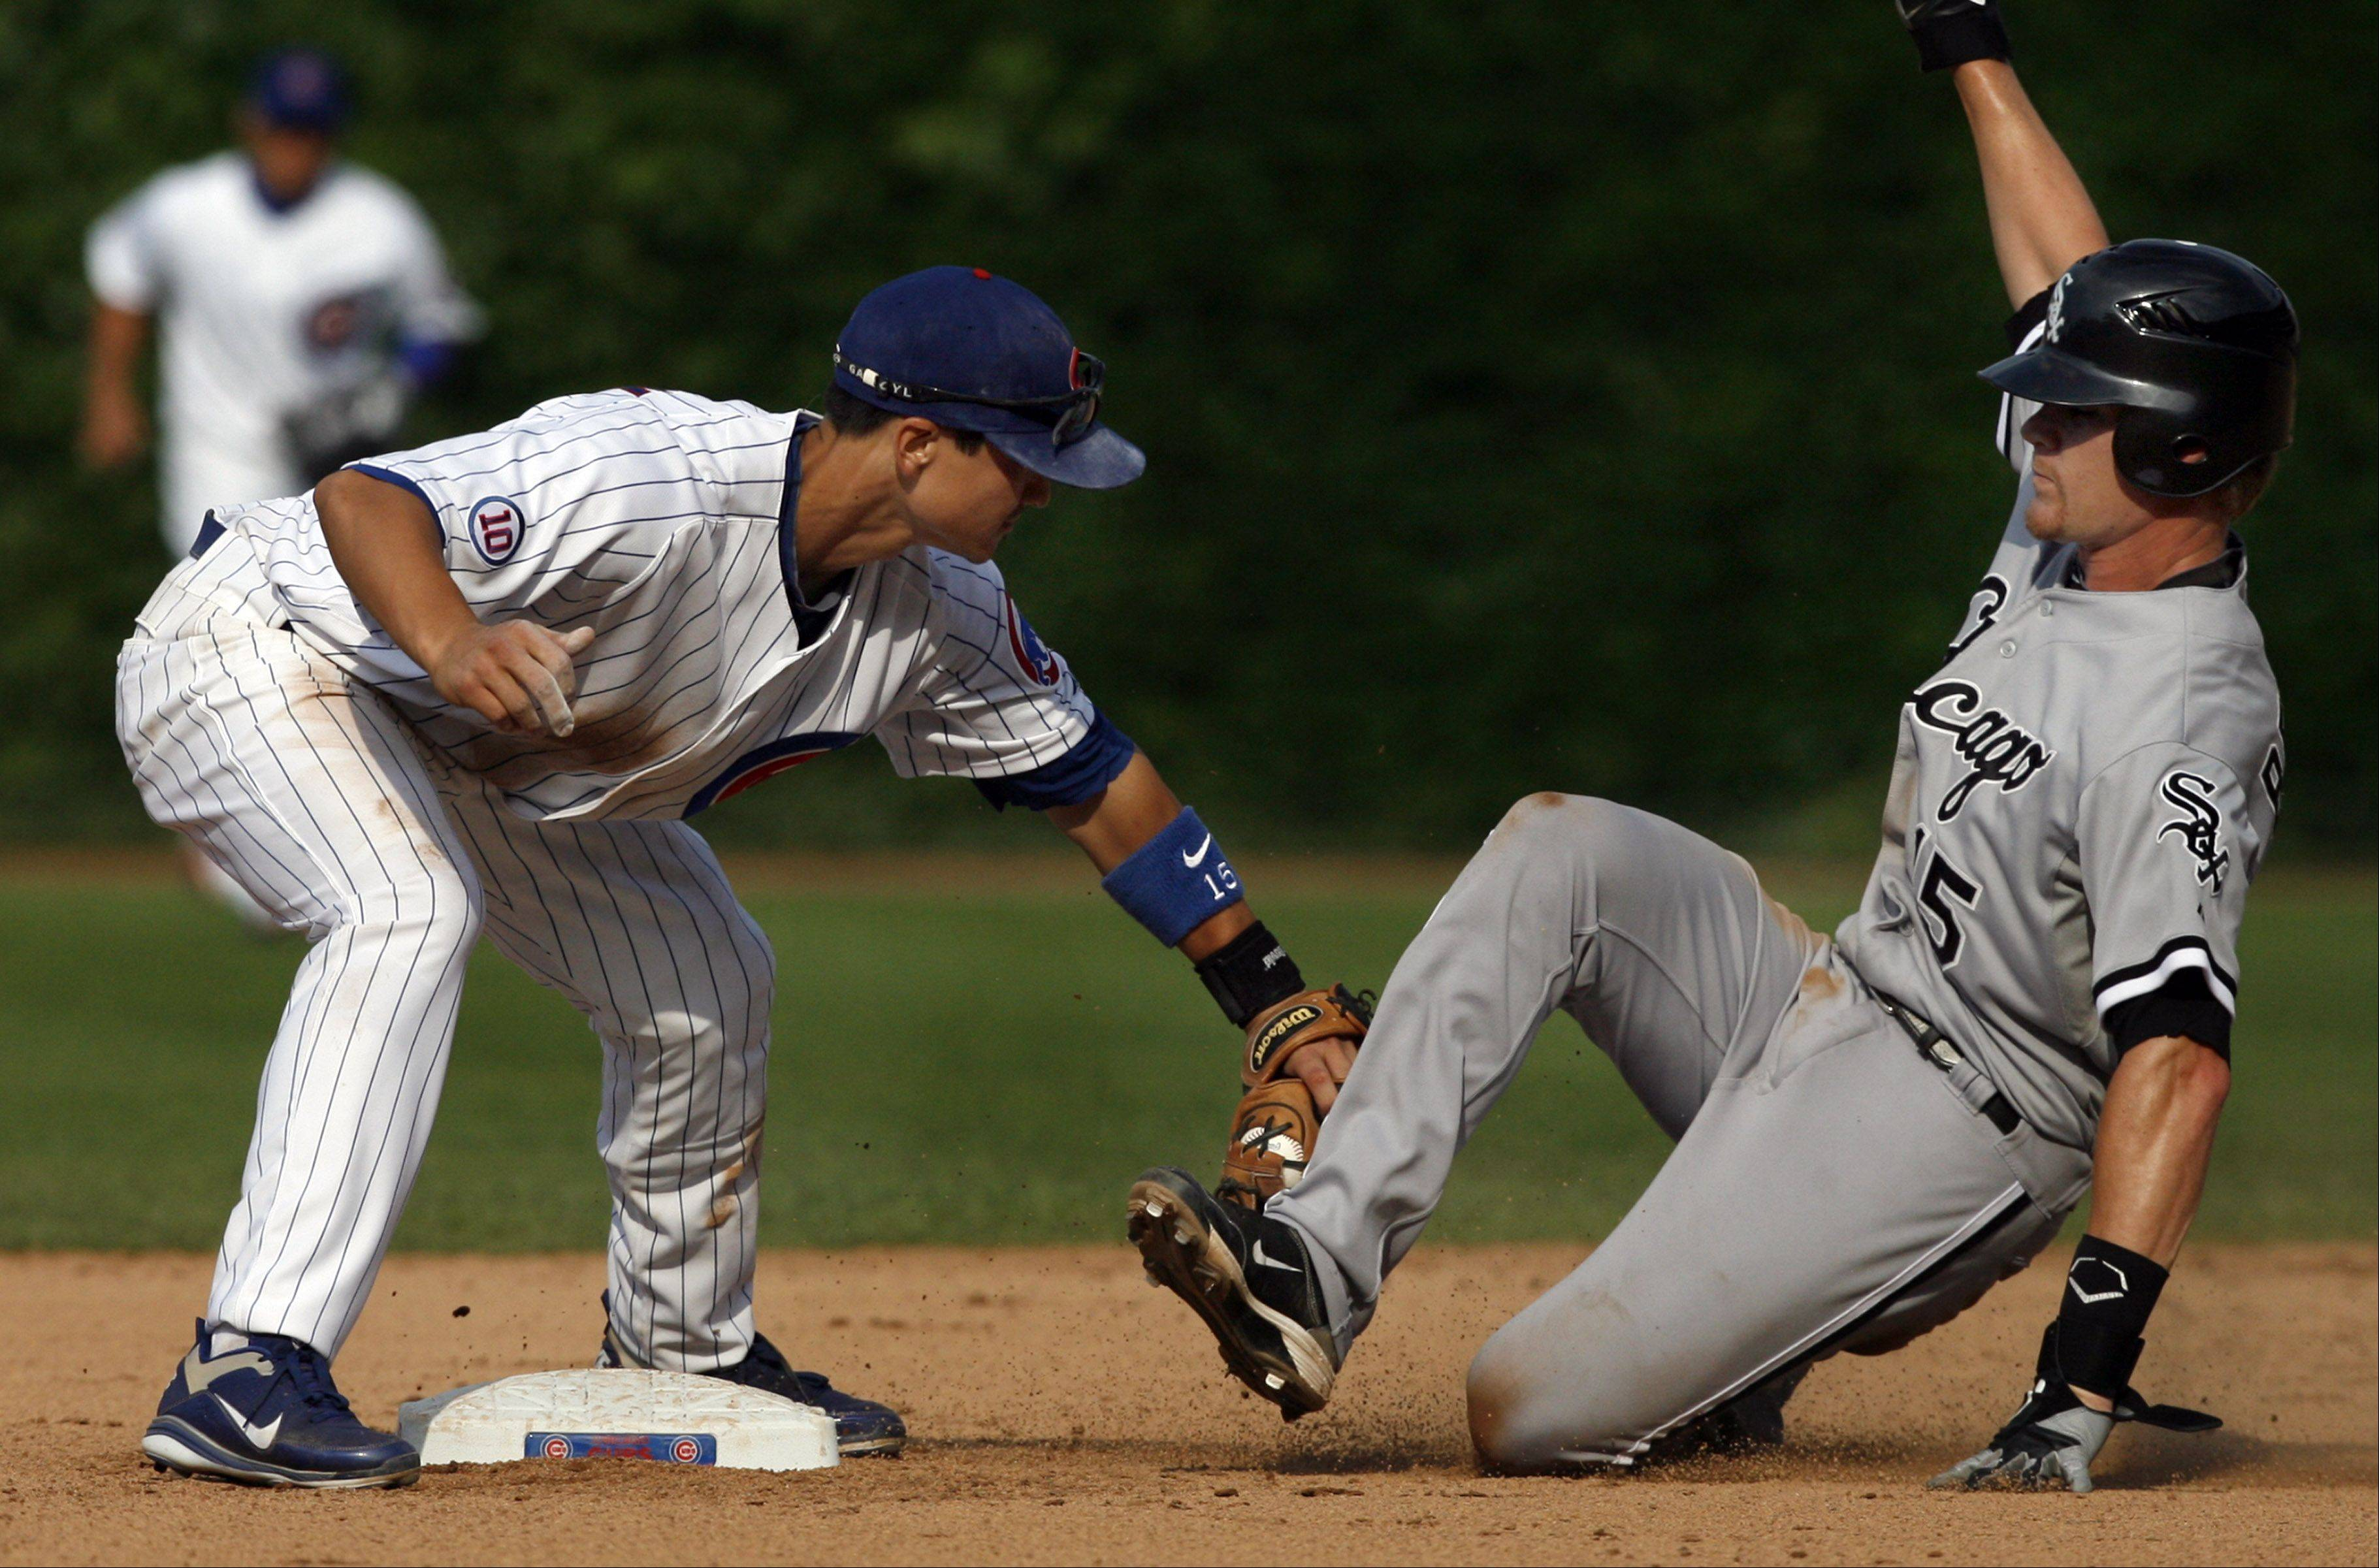 Cubs Darwin Barney tags White Sox Gordon Beckham out at second as Sox win 1-0 at Wrigley Field on Saturday.